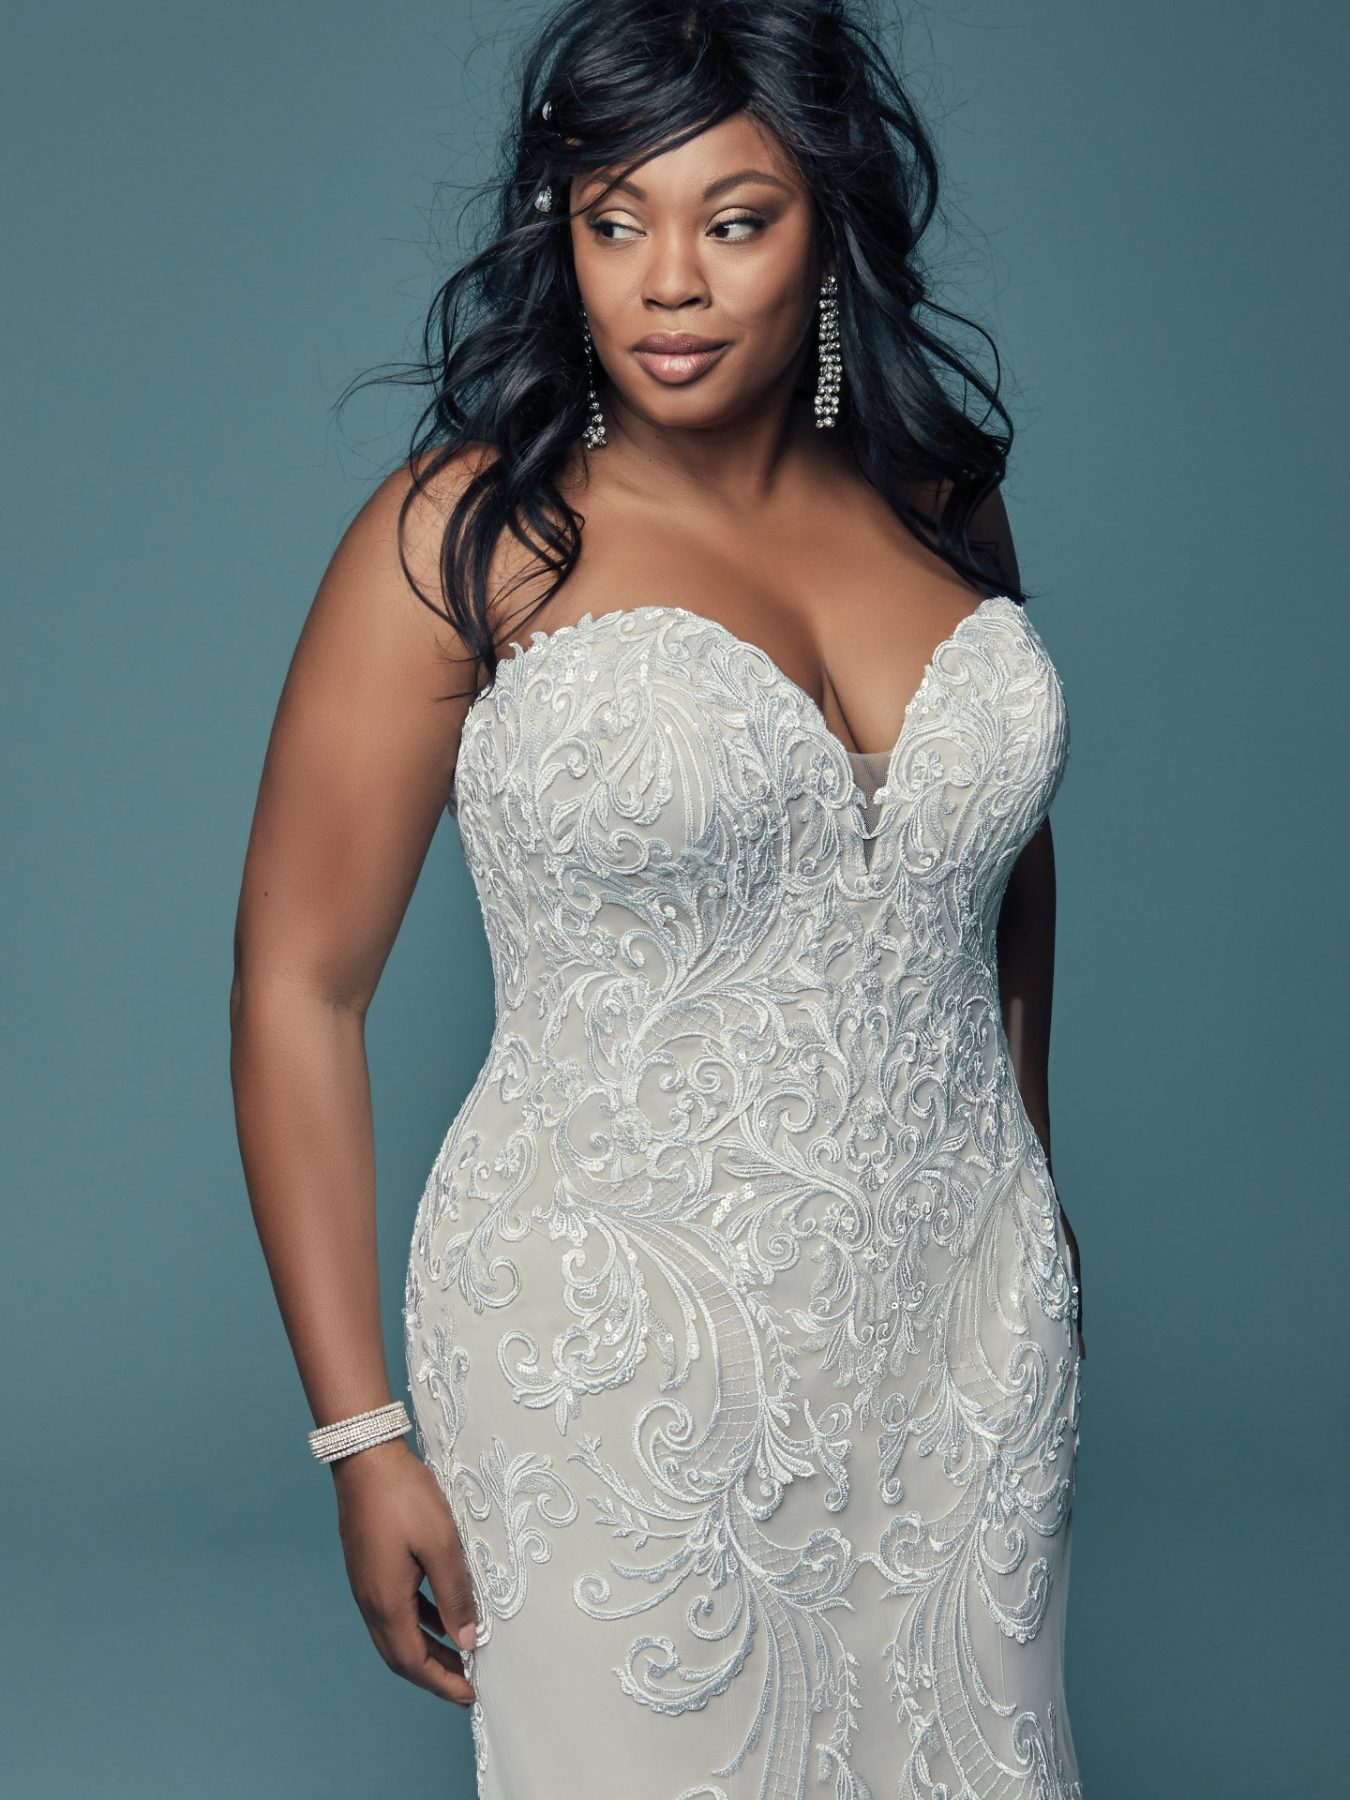 b93d660dad0 22 Designer Plus-Size Wedding Dresses That Prove Your Body is ...